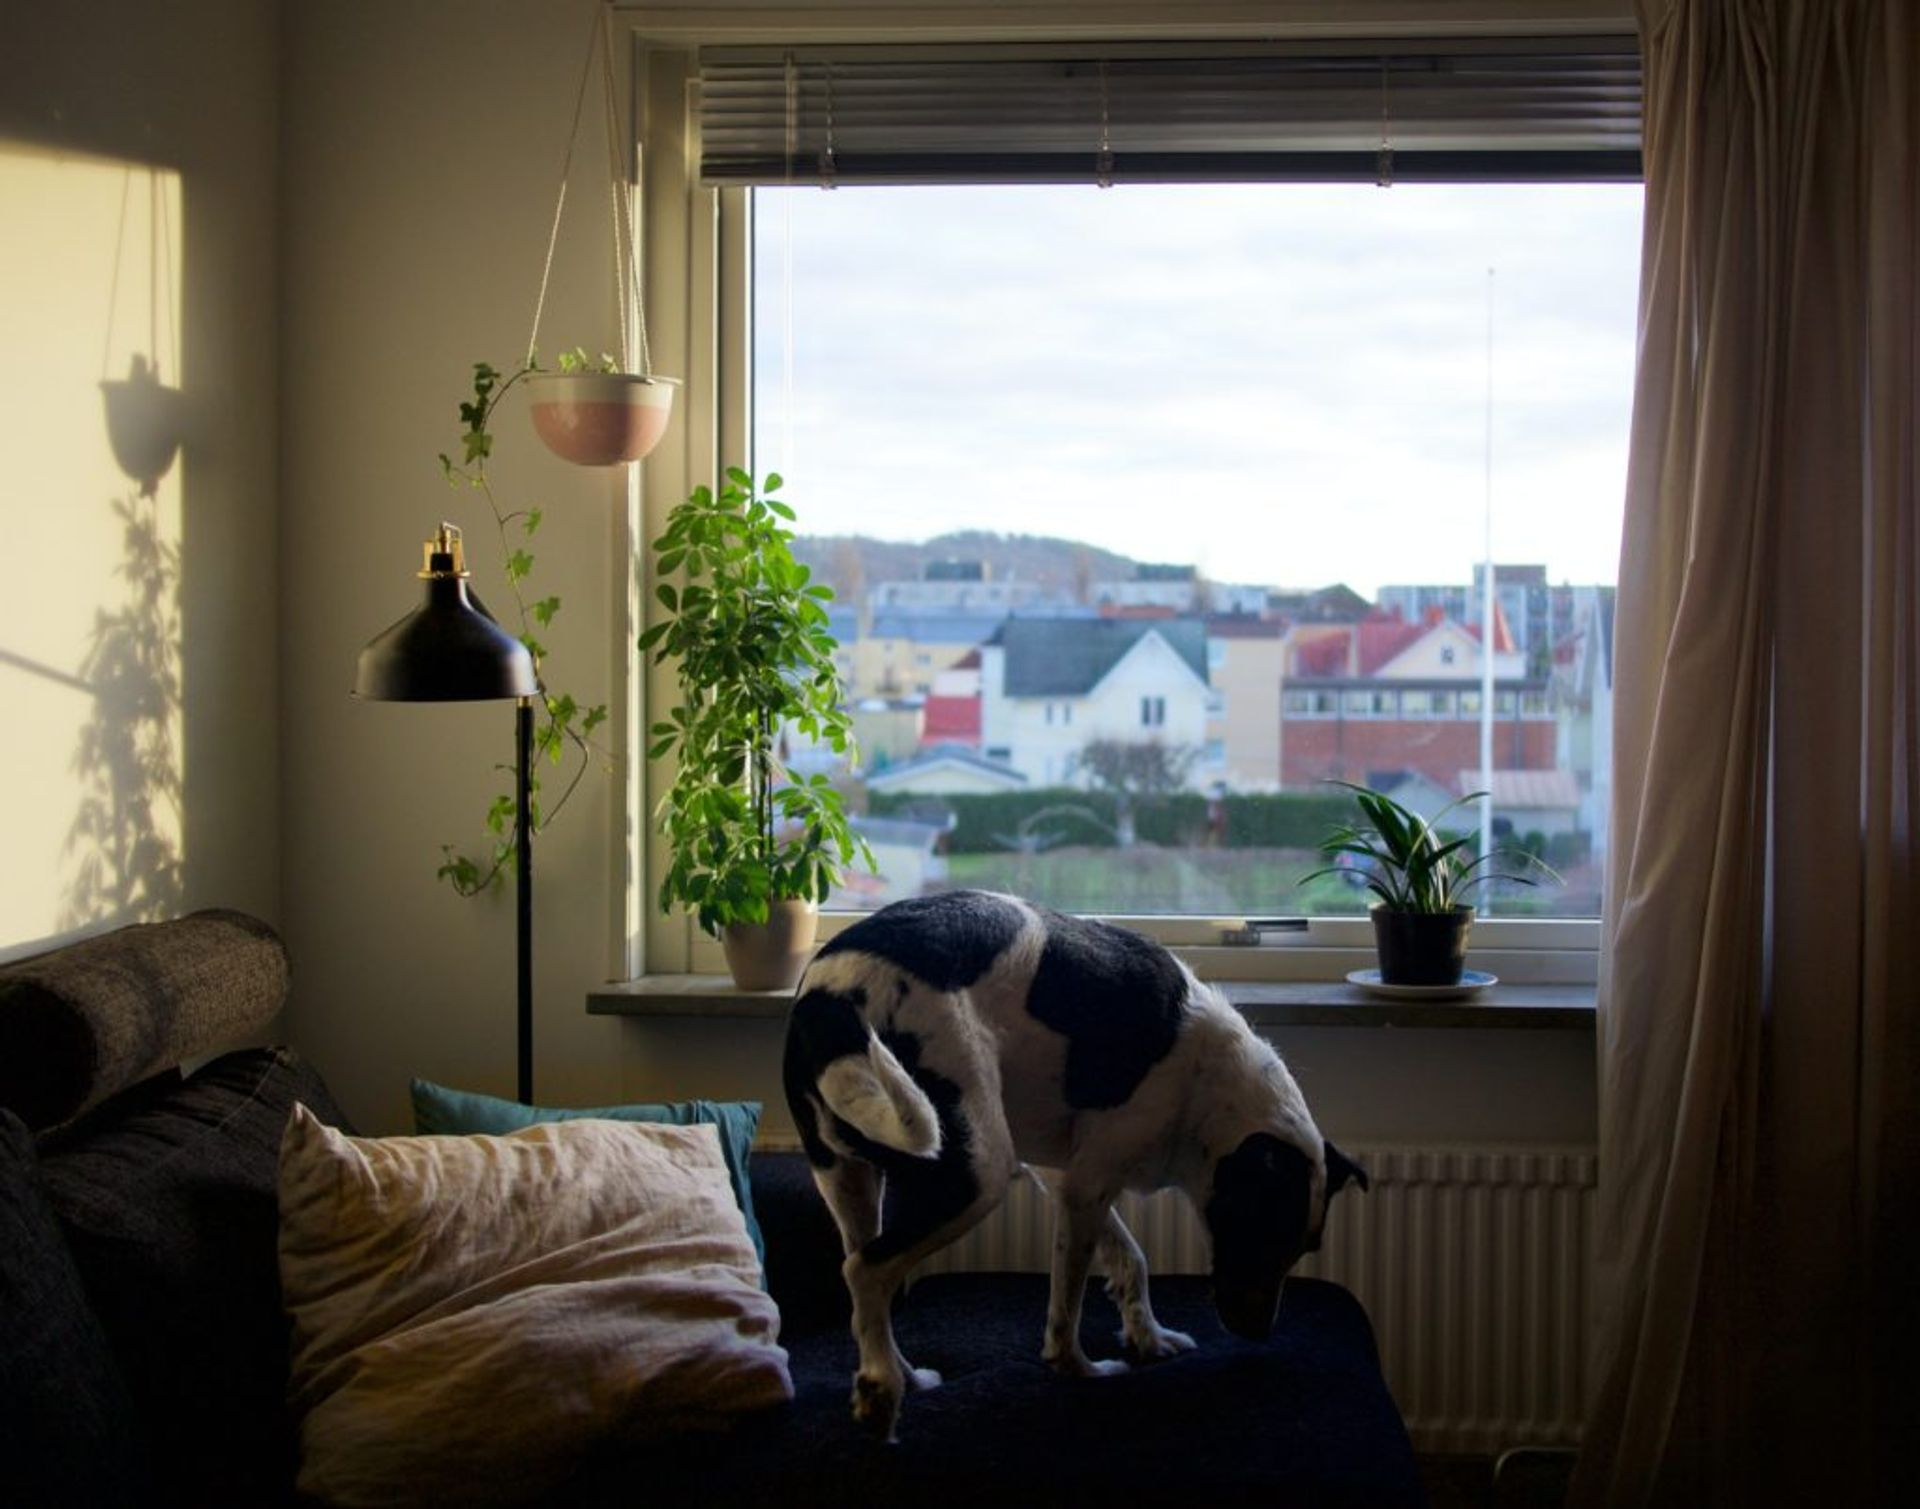 A dog standing on a grey sofa by the window.